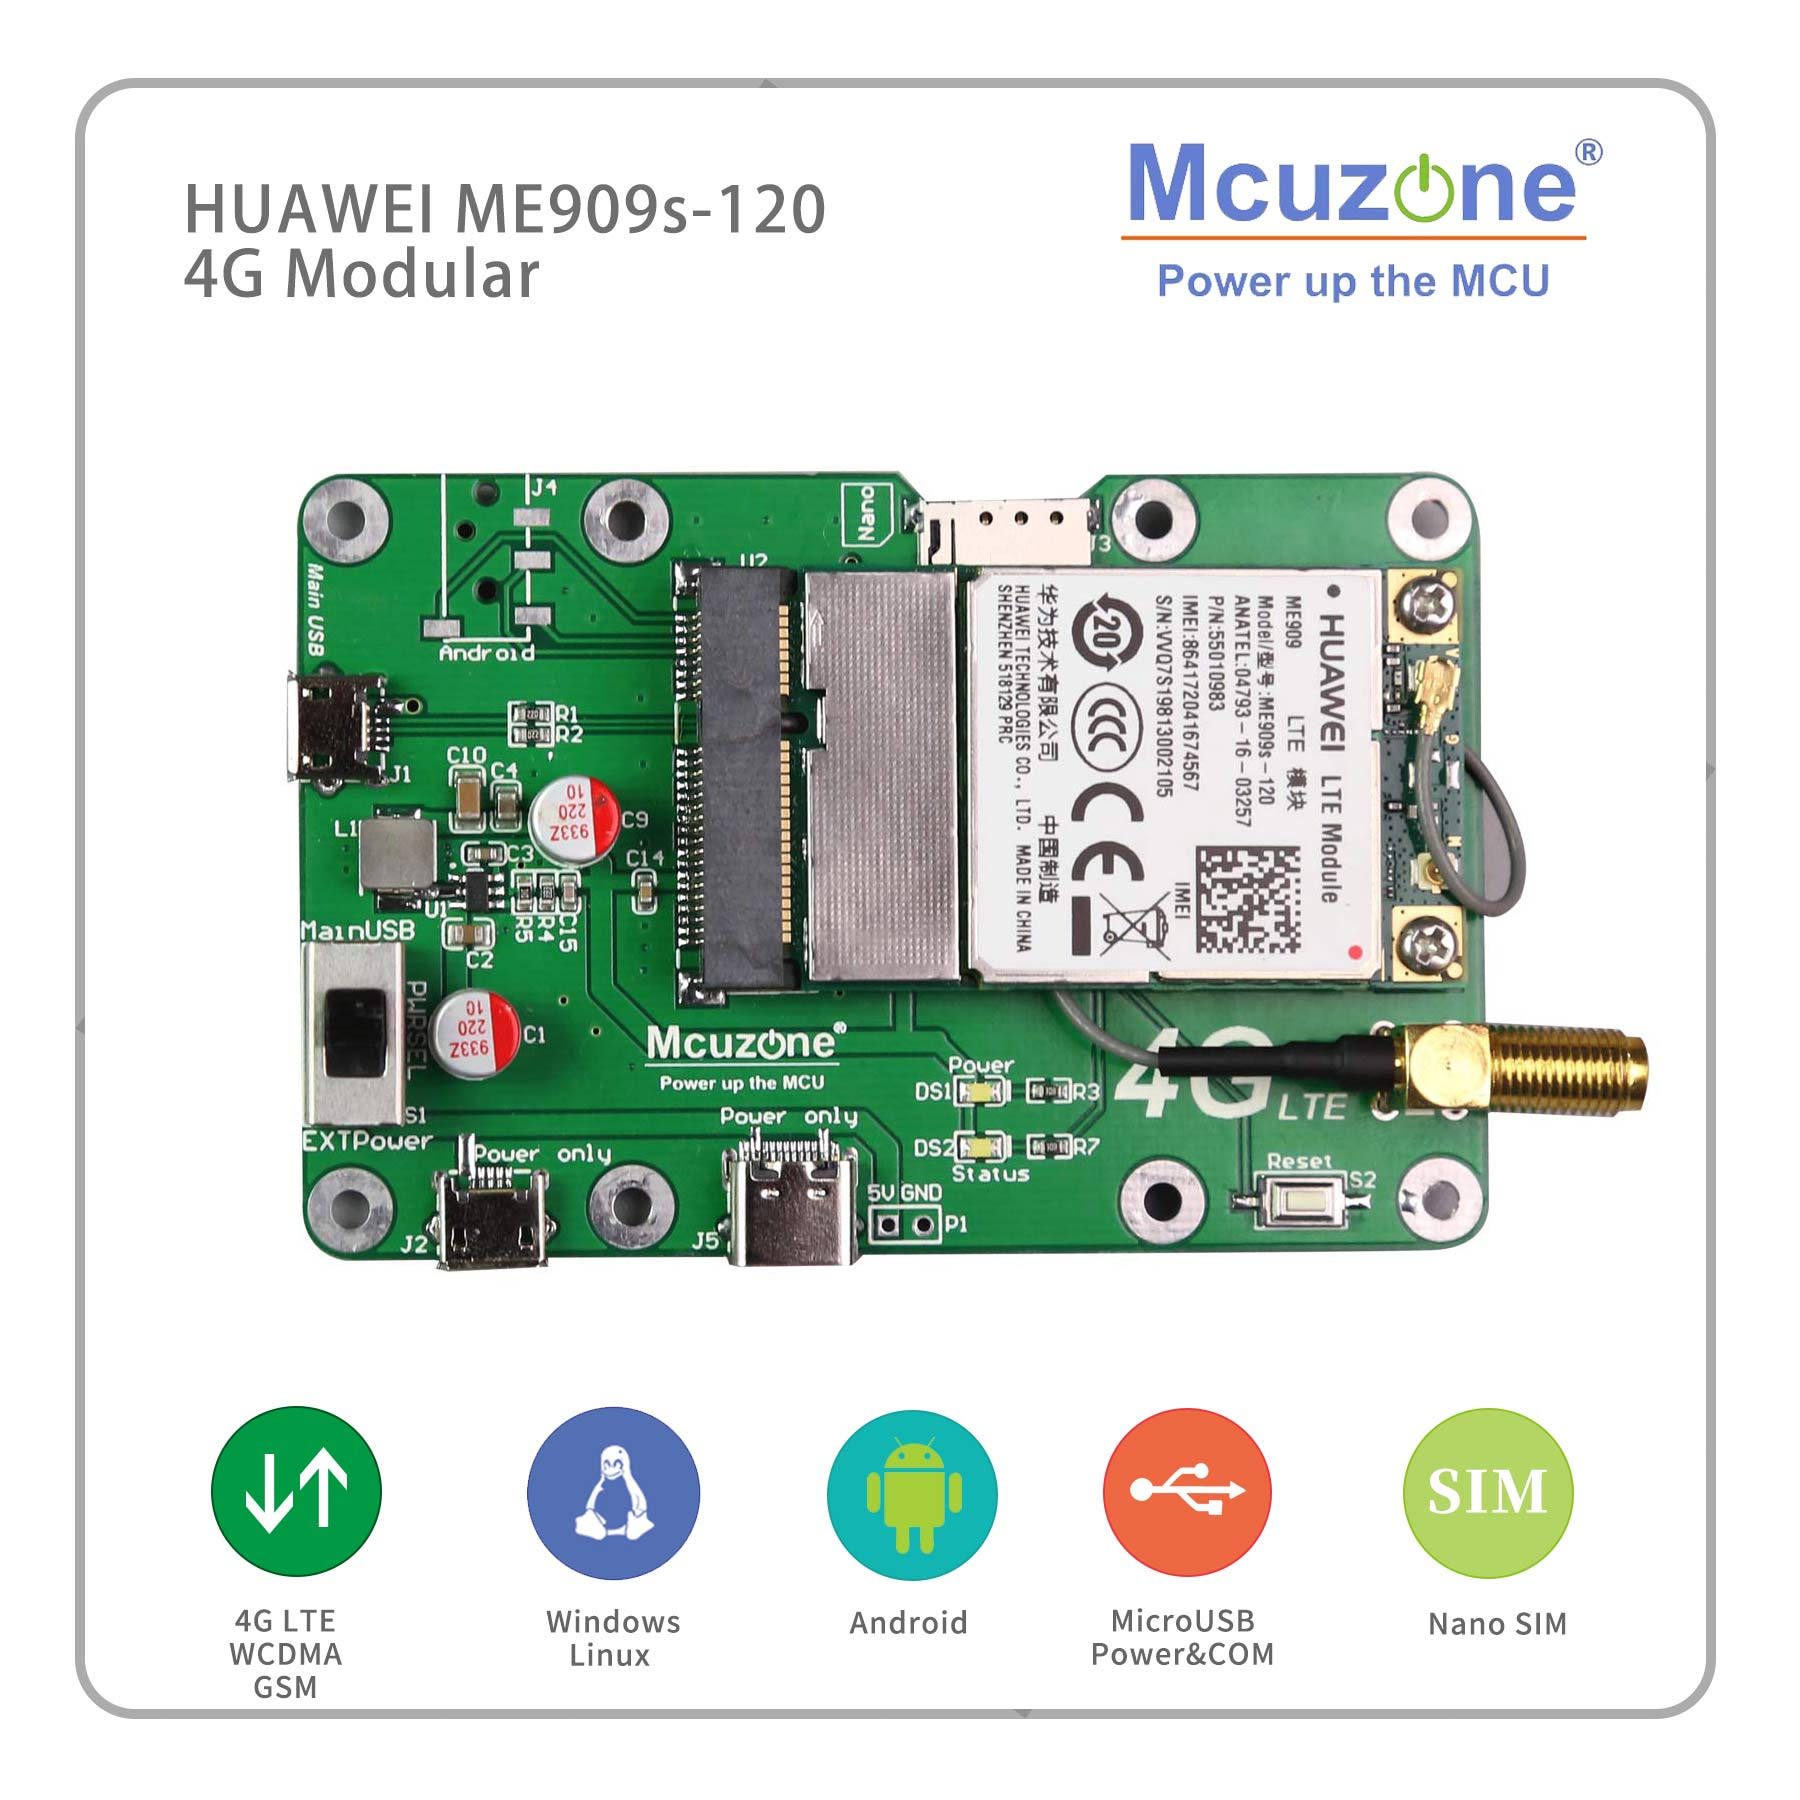 Huawei ME909s-120 ME909s-821a USB High Performance 4G LTE Module For Global Carriers, Suitable For Raspberry Pi  Win10, Ubuntu